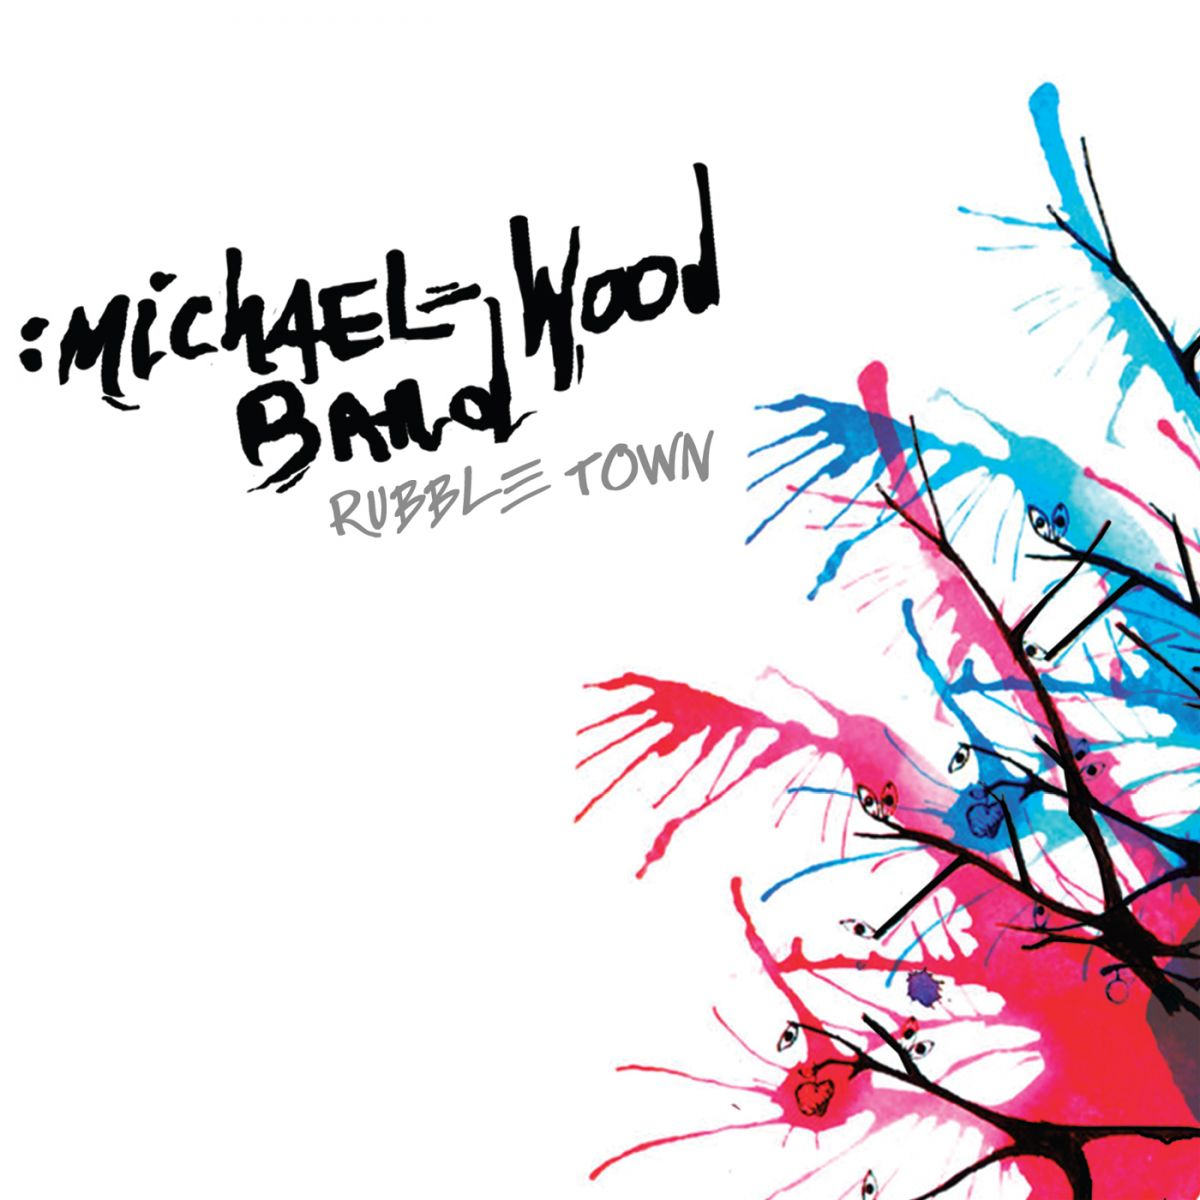 Michael Wood Band | Hopeful Alt-Rock